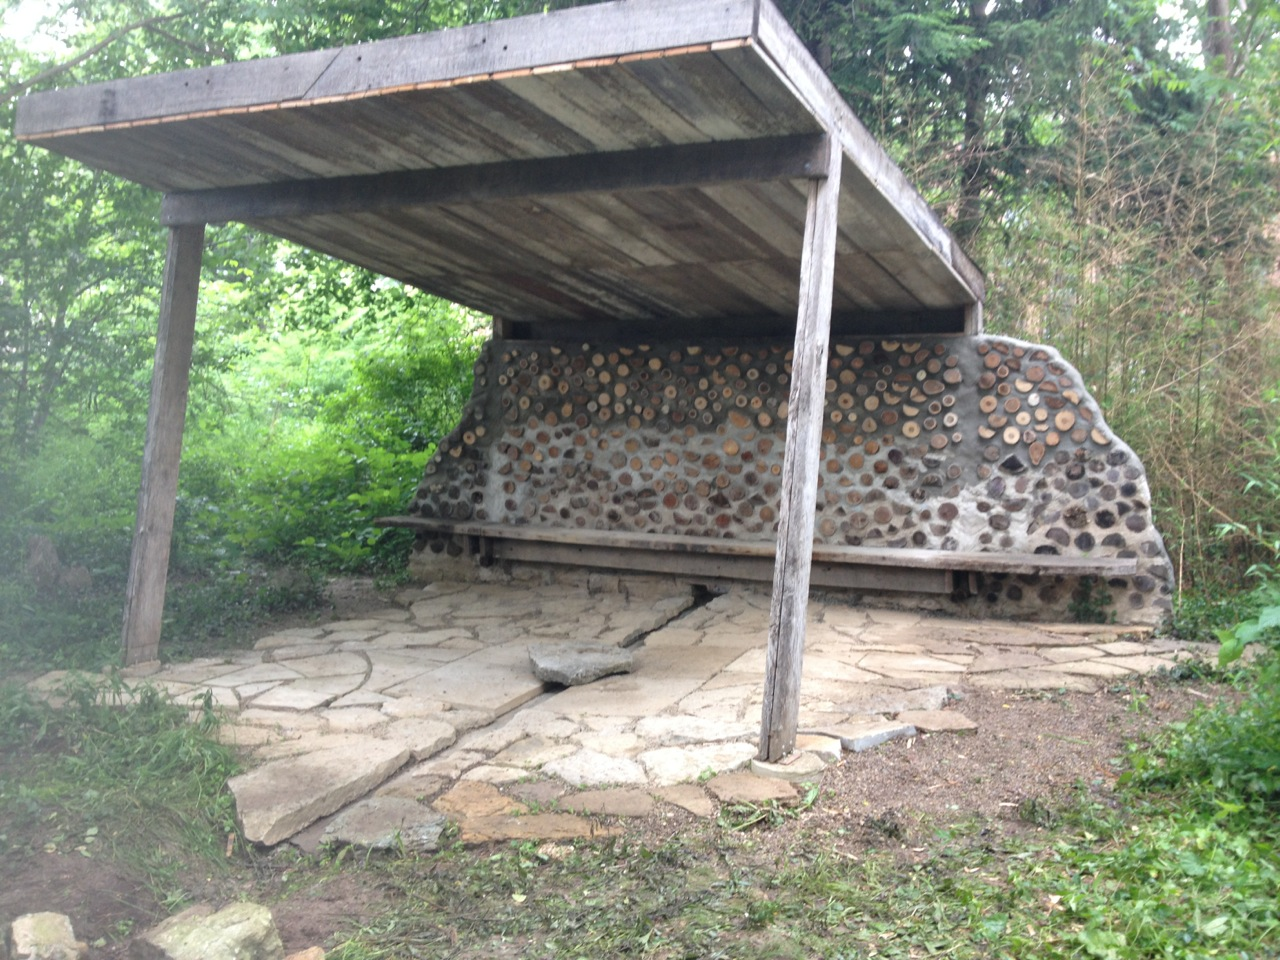 The Tea House completed structure, Summer 2014